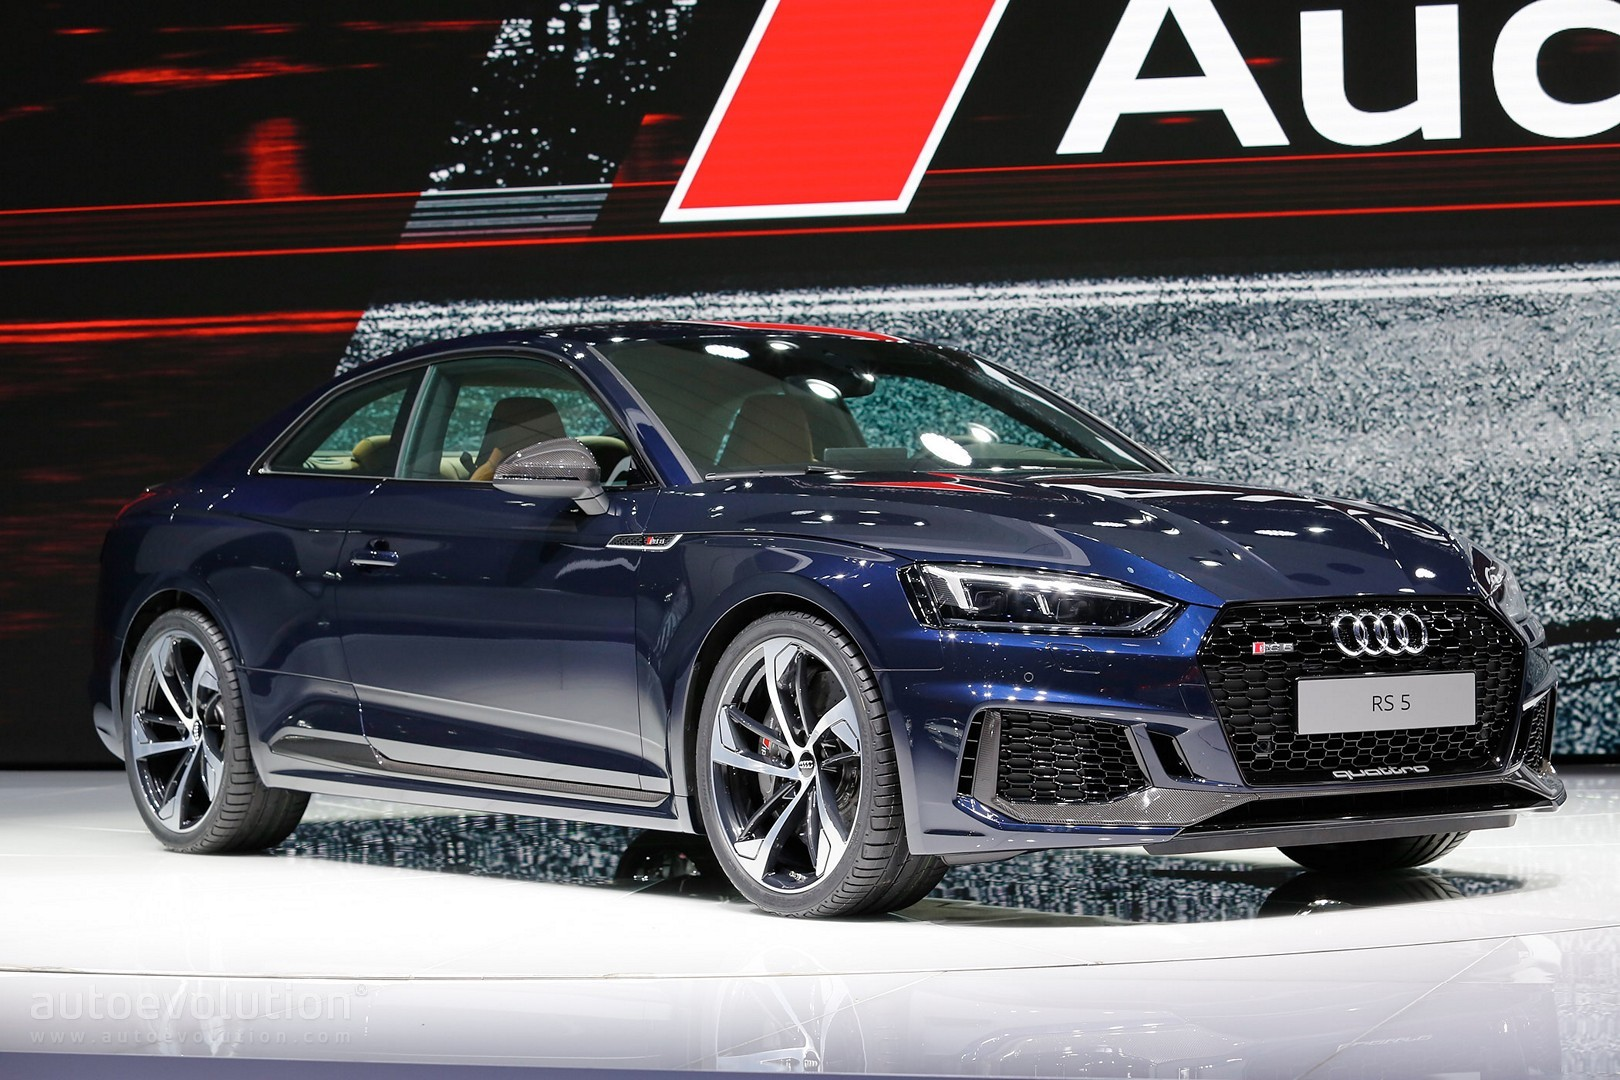 2018 Audi Rs5 Looks Sexy In Geneva But Is 450 Hp Enough